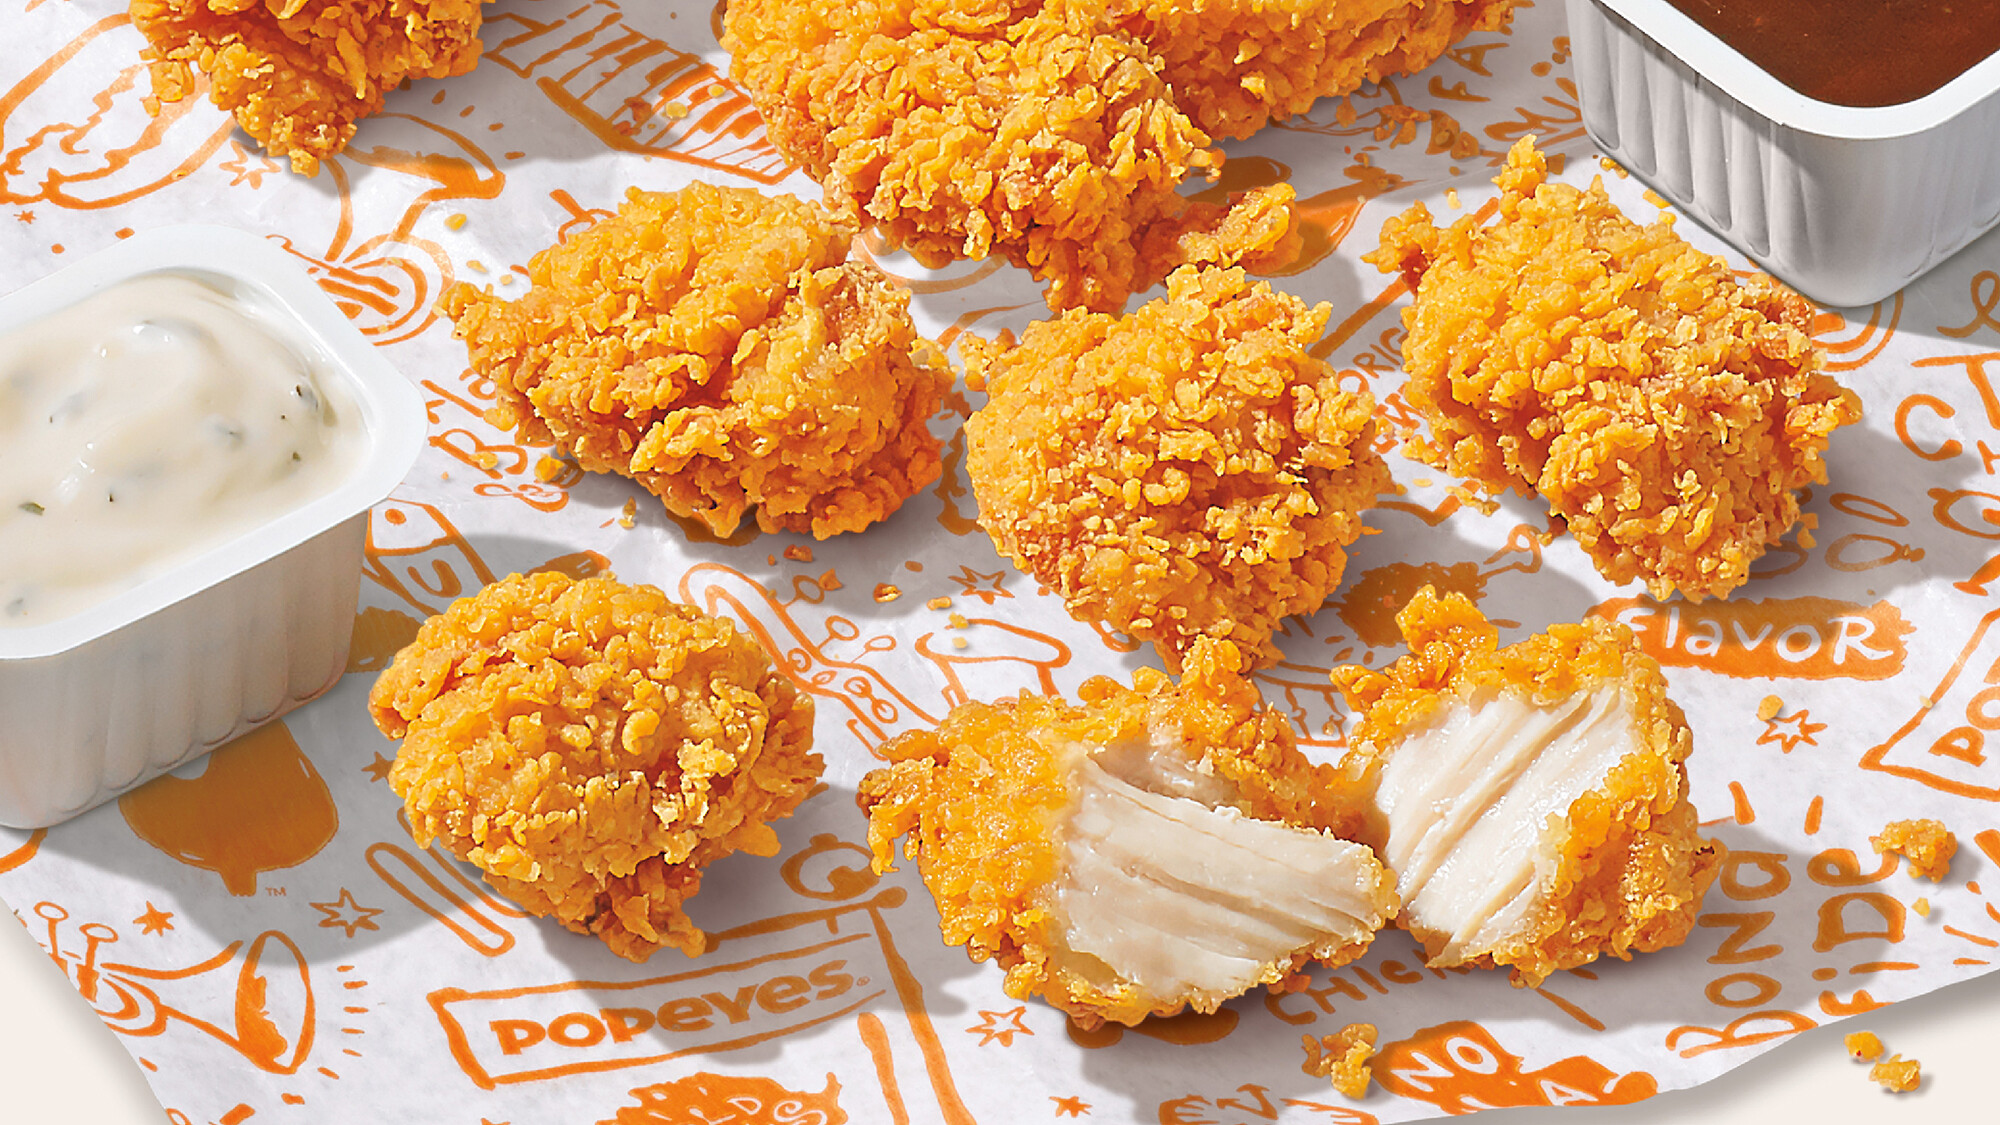 Popeyes' chicken sandwich is so popular it's adding nuggets to the menu